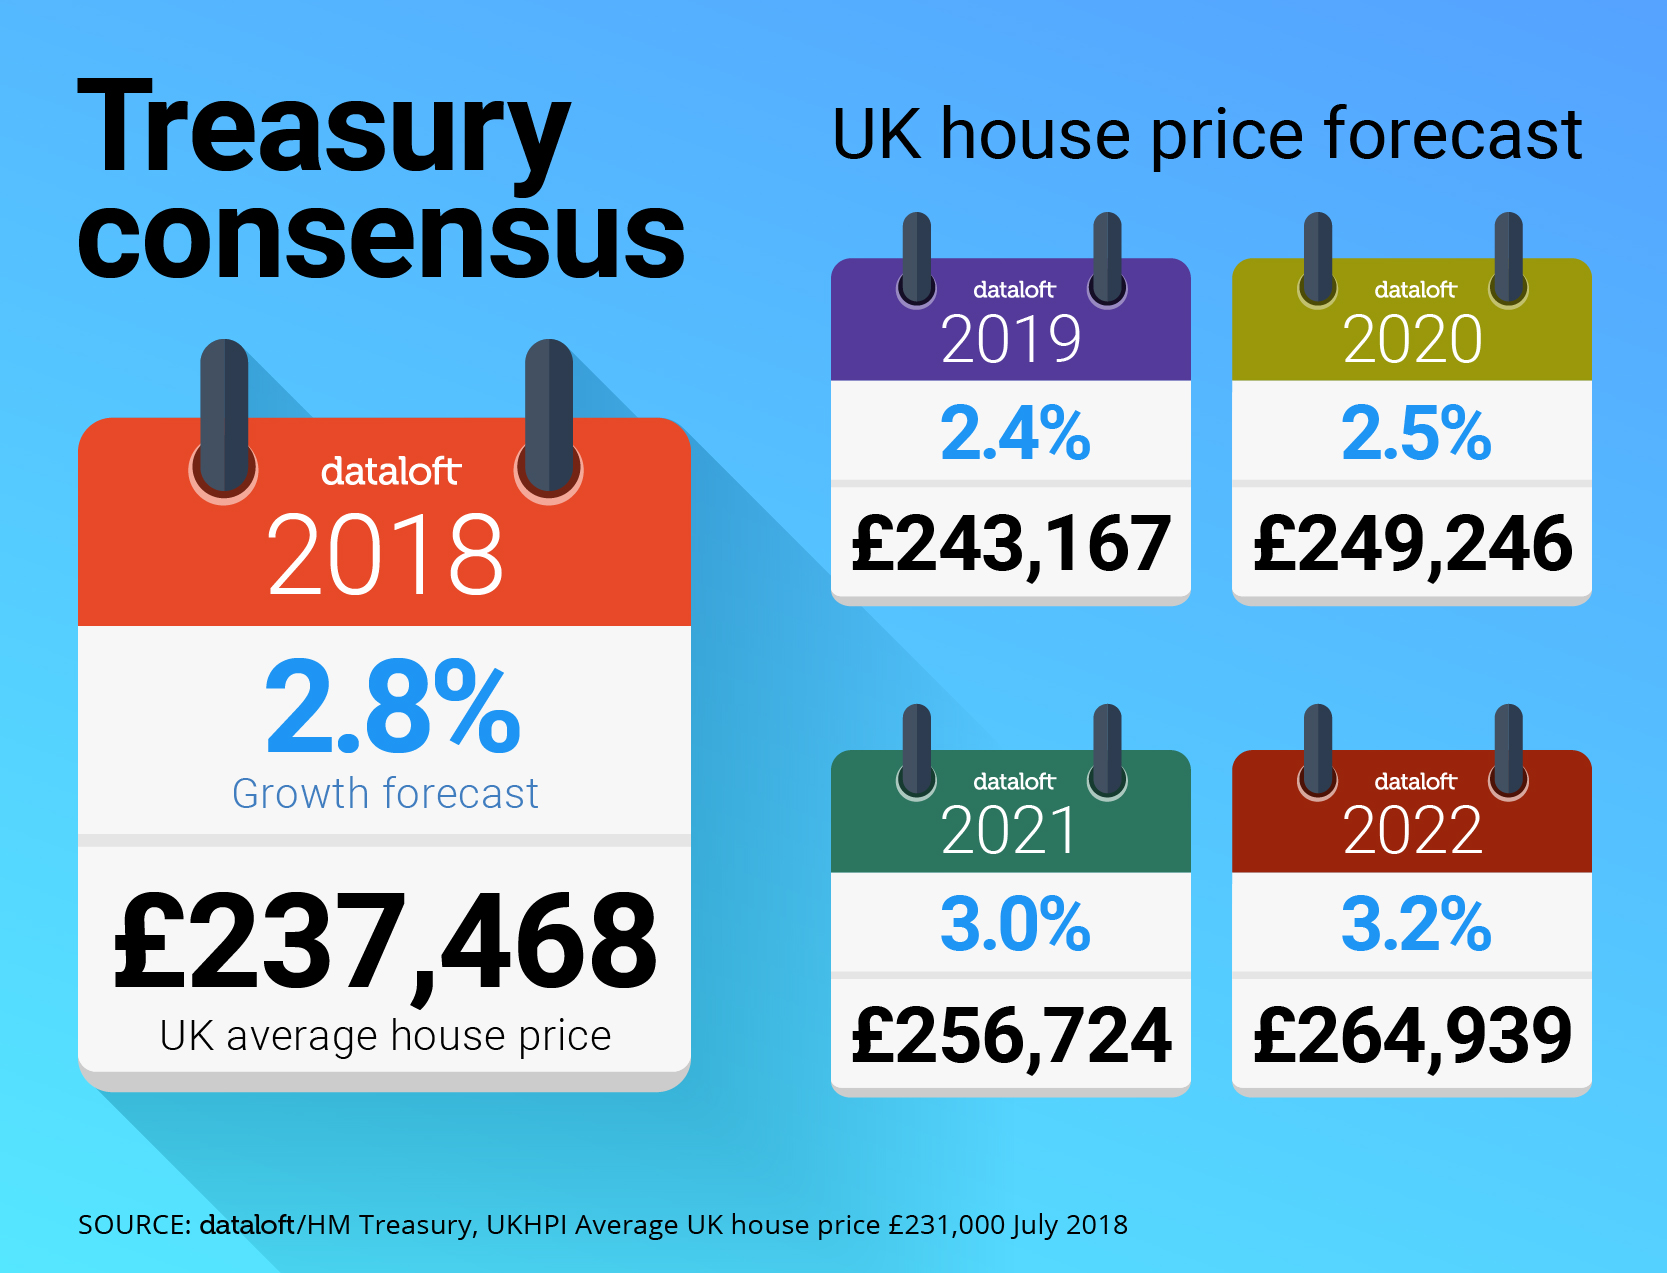 What is going to happen to house prices?